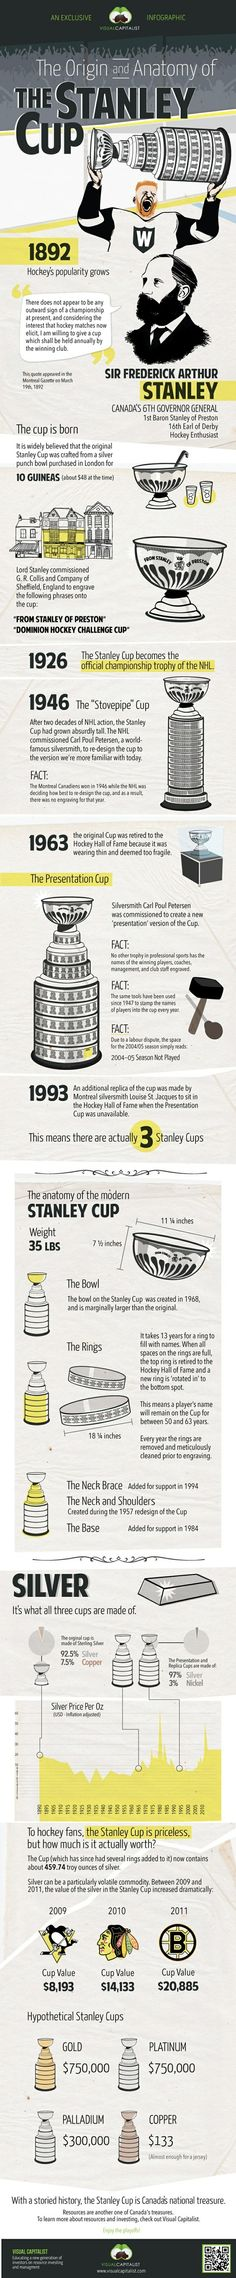 Origin of the Stanley Cup